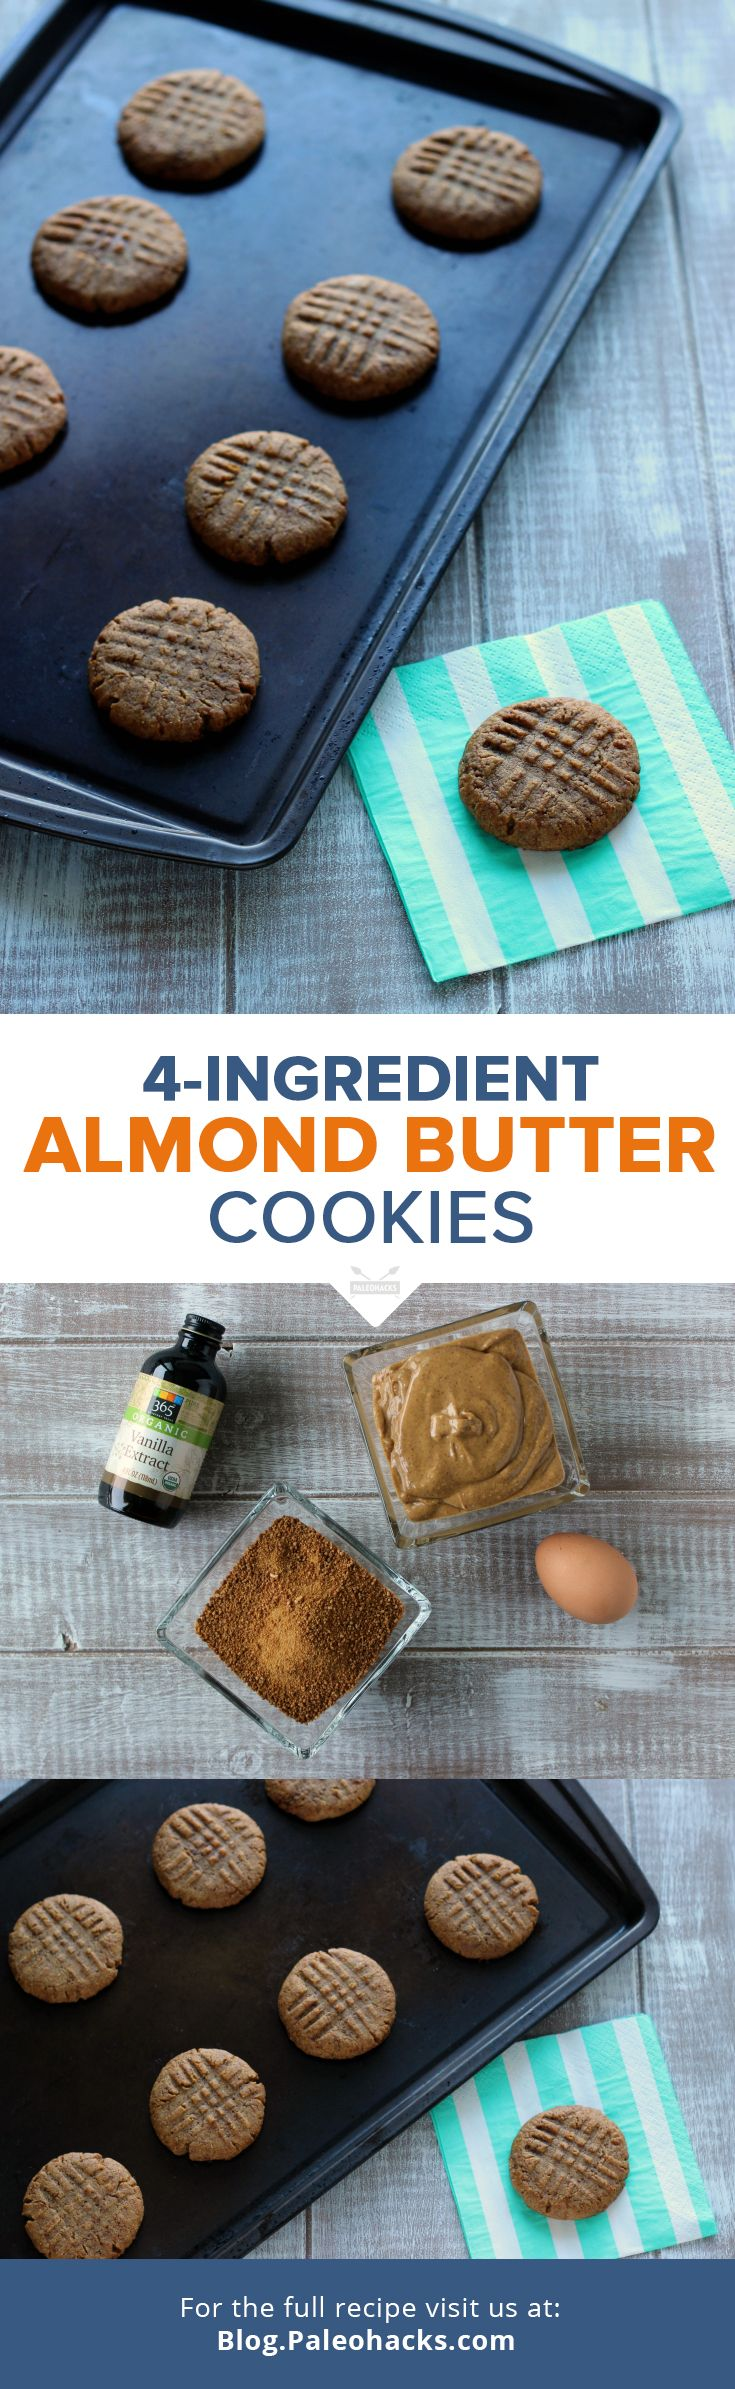 Simple Paleo Almond Butter Cookies.  Feed Your Cookie Cravings Without a Gram of Guilt.  -  almond butter, or other nut butters, egg, vanilla, sugar.  sweet snack.   lj